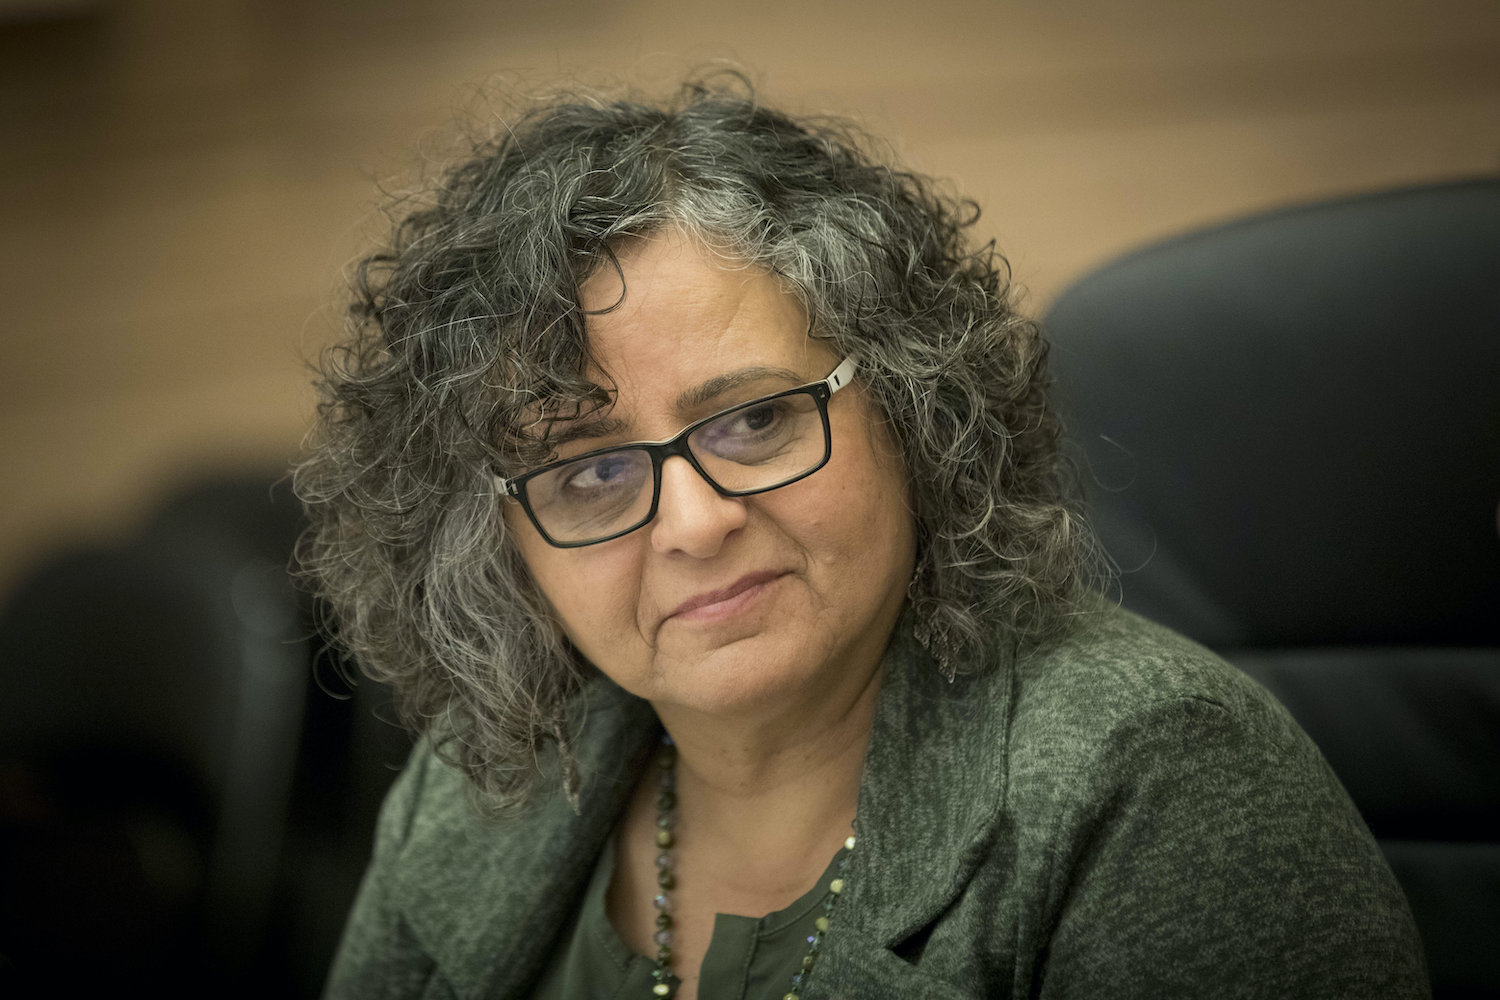 Joint List Knesset member Aida Touma-Sliman leads a Status of Women and Gender Equality Committee meeting at the Israeli parliament on December 27, 2016. (Yonatan Sindel/Flash90)